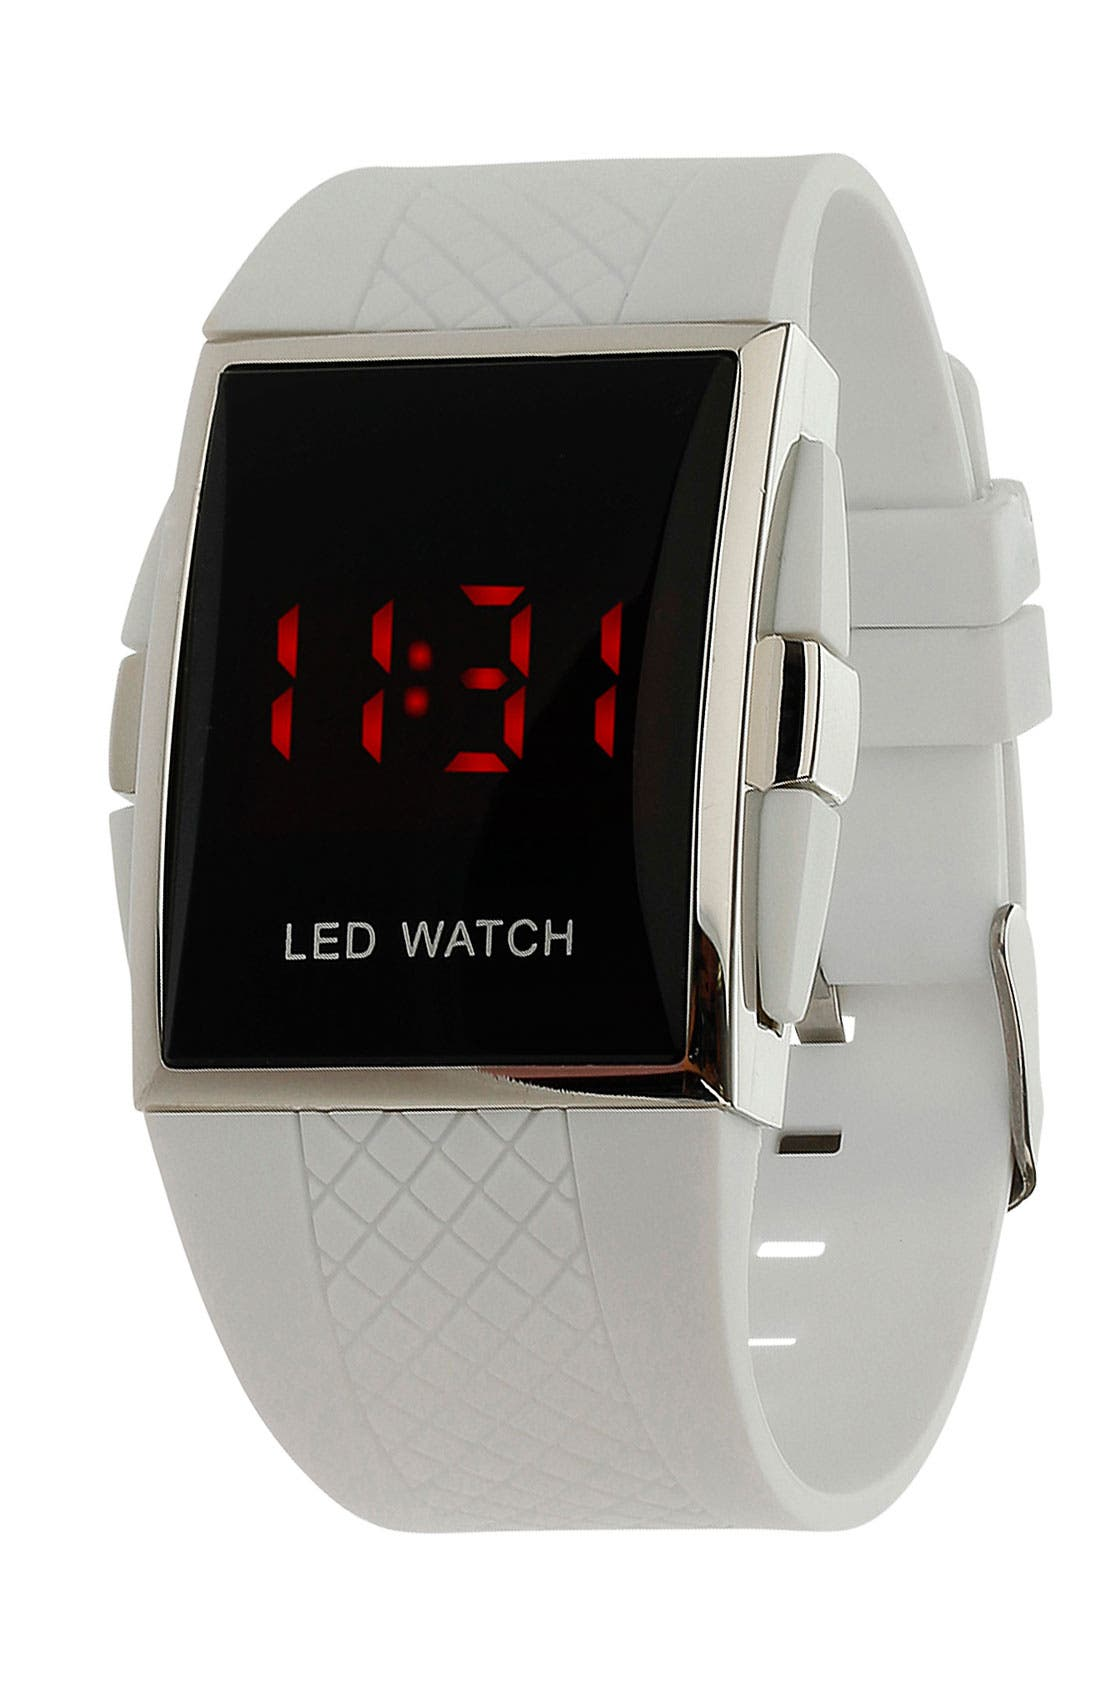 Main Image - Topman Textured Strap LED Watch